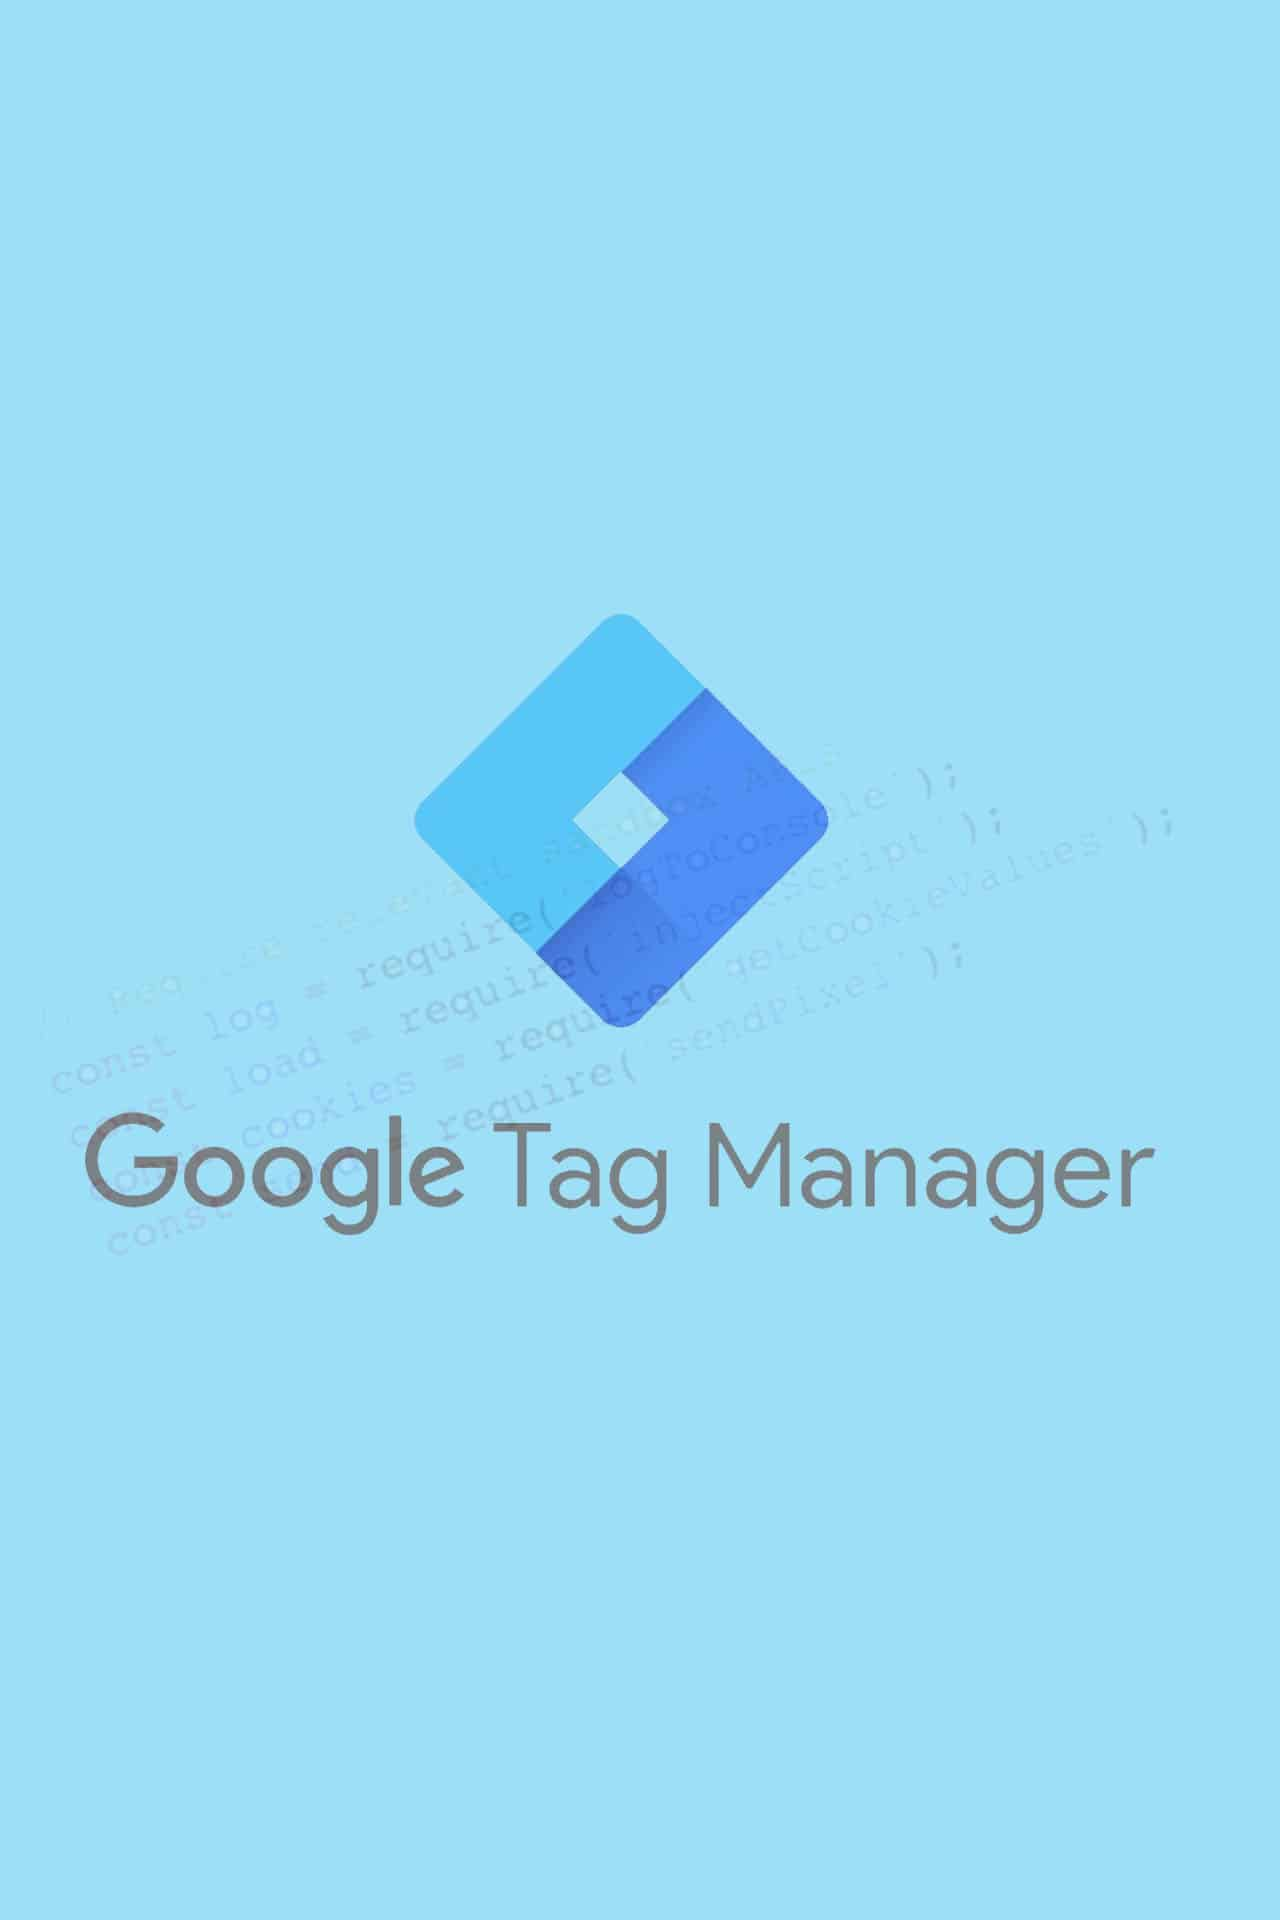 Google Tag Manager introduce Custom Templates